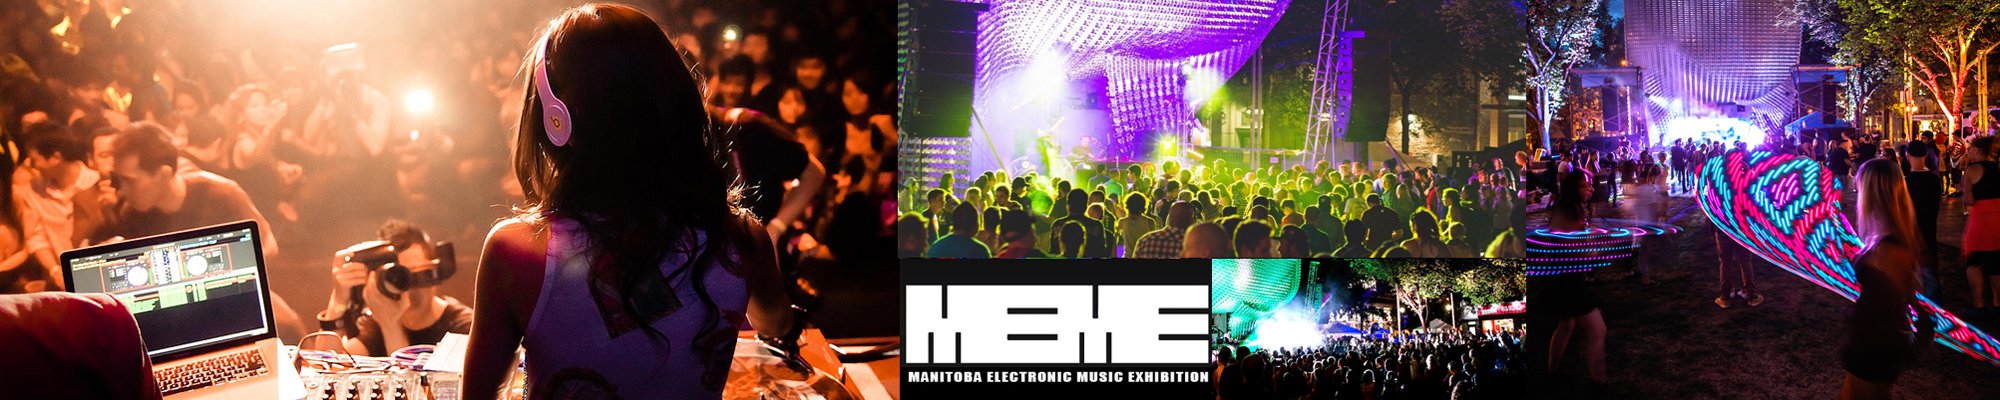 Manitoba Electronic Music Exhibition